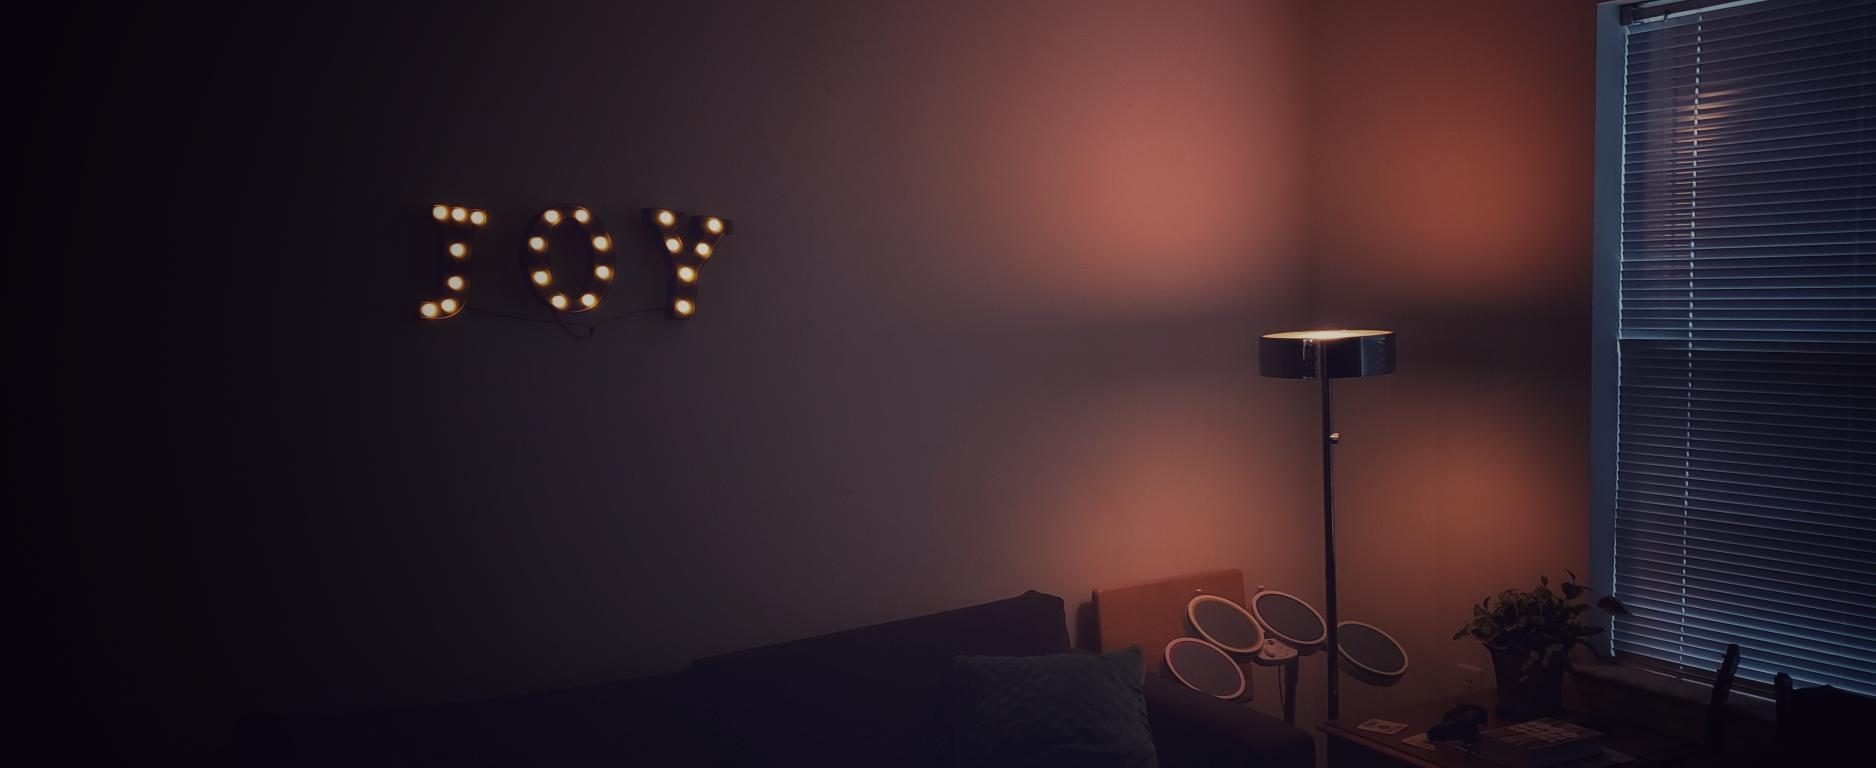 dark room lit up by a dim lamp and the word joy splt out on the wall wuth neon lights.